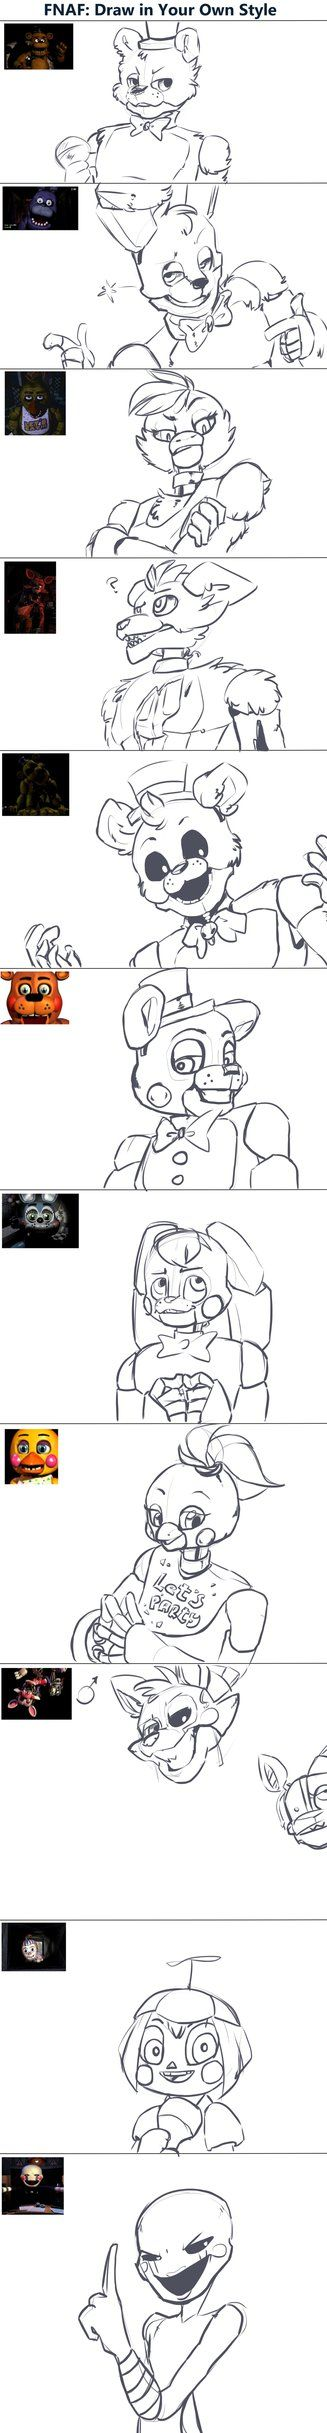 FNaF related art...but where's the full drawing of Mangle?